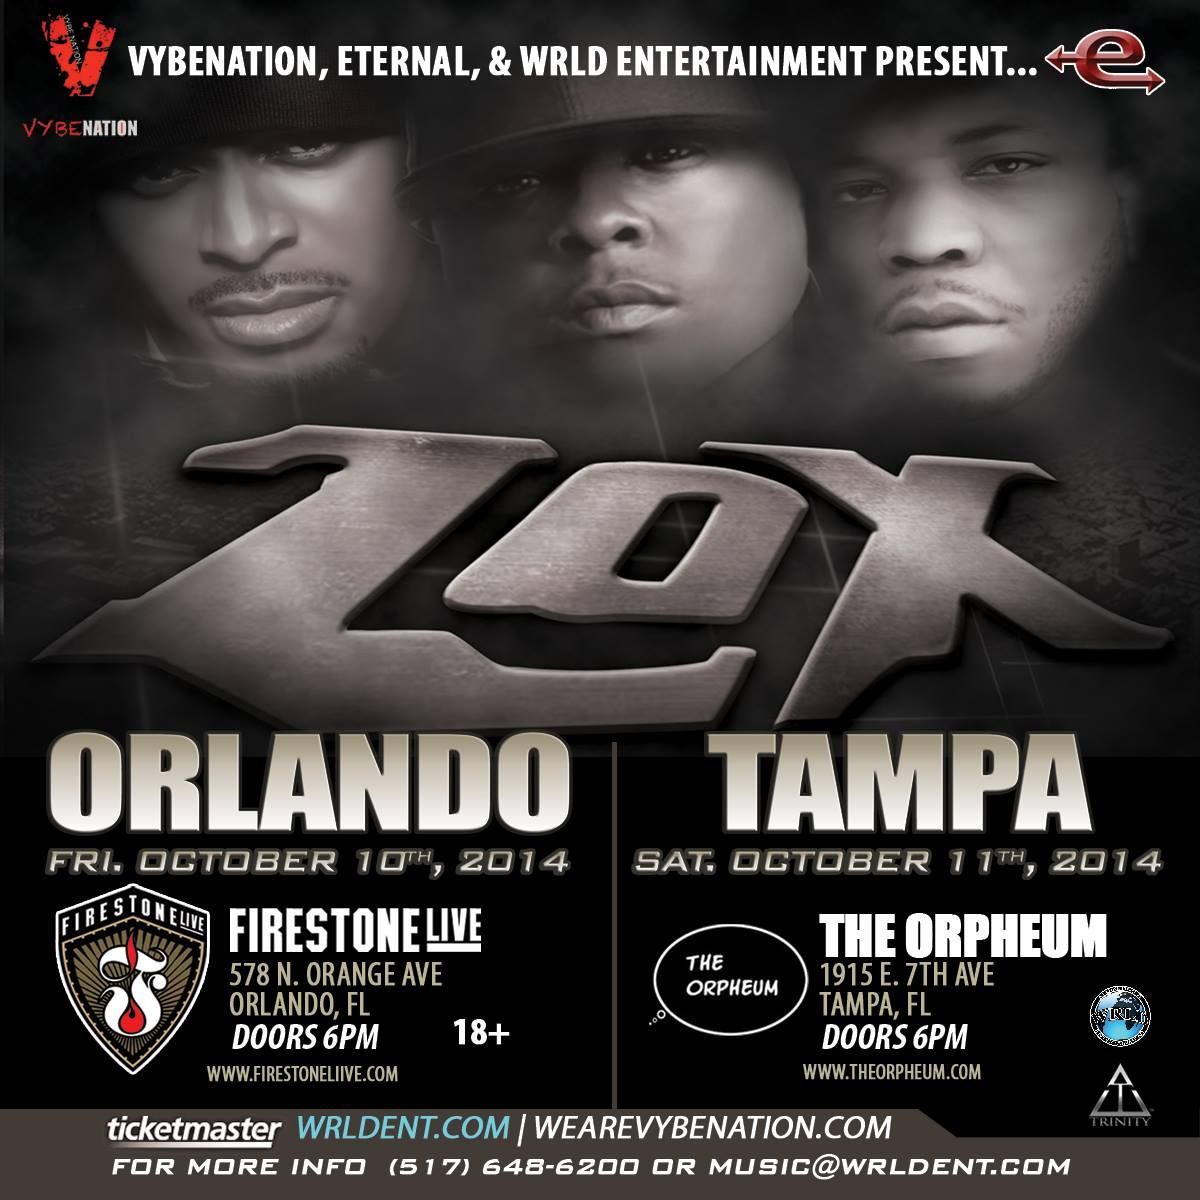 Catch The Lox live in Orlando & Tampa, part of the Trinity